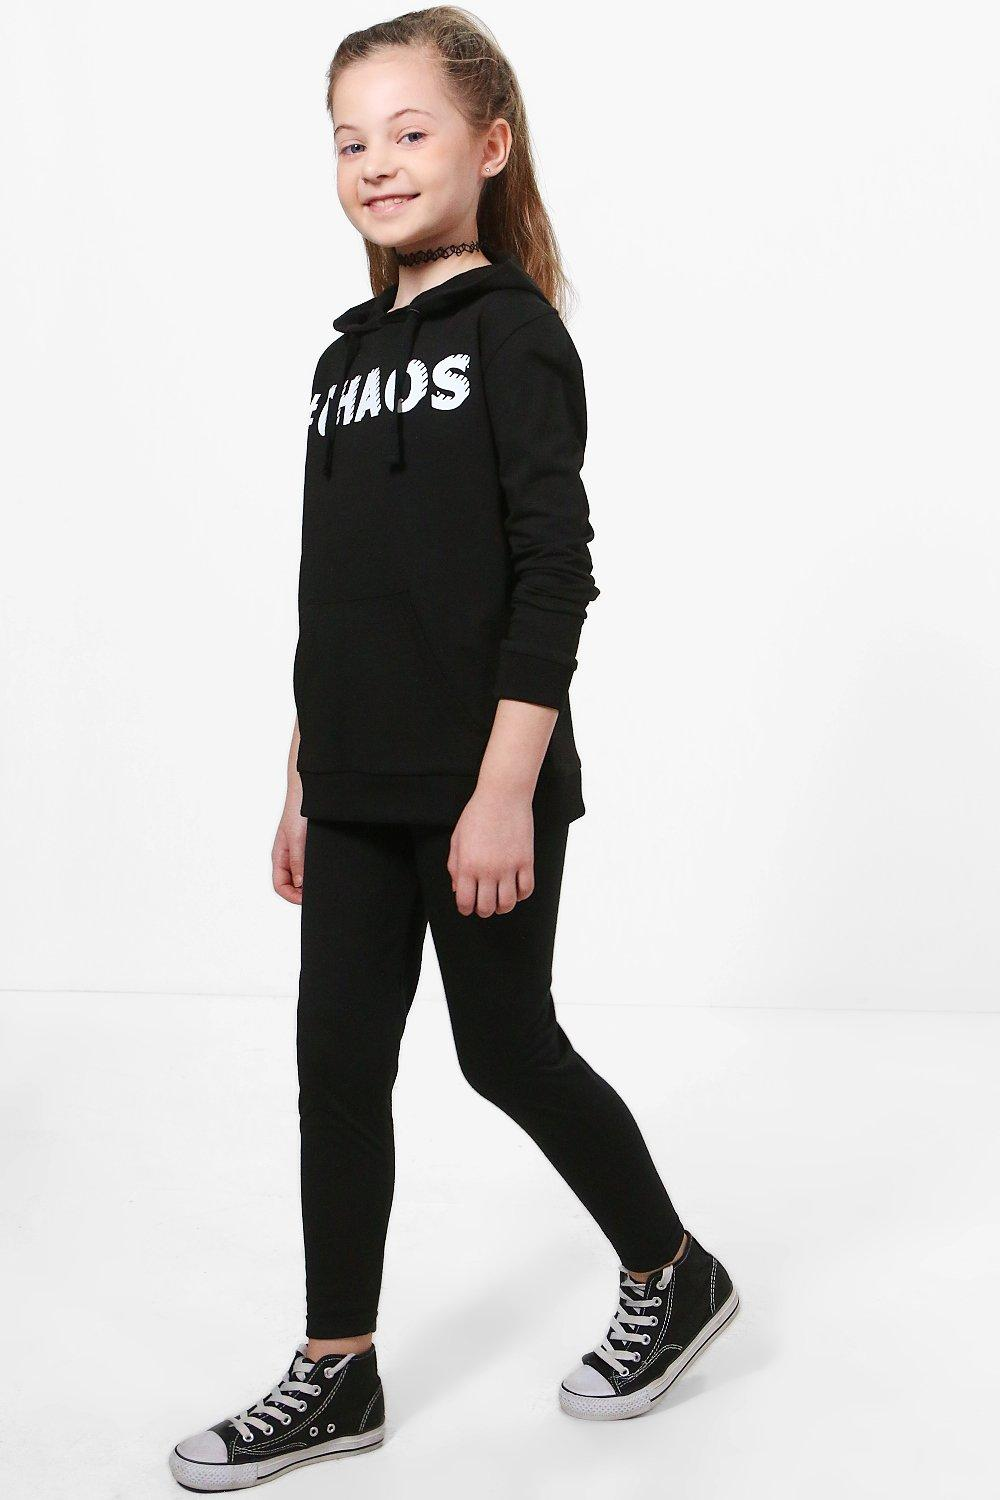 Girls Basic Leggings black